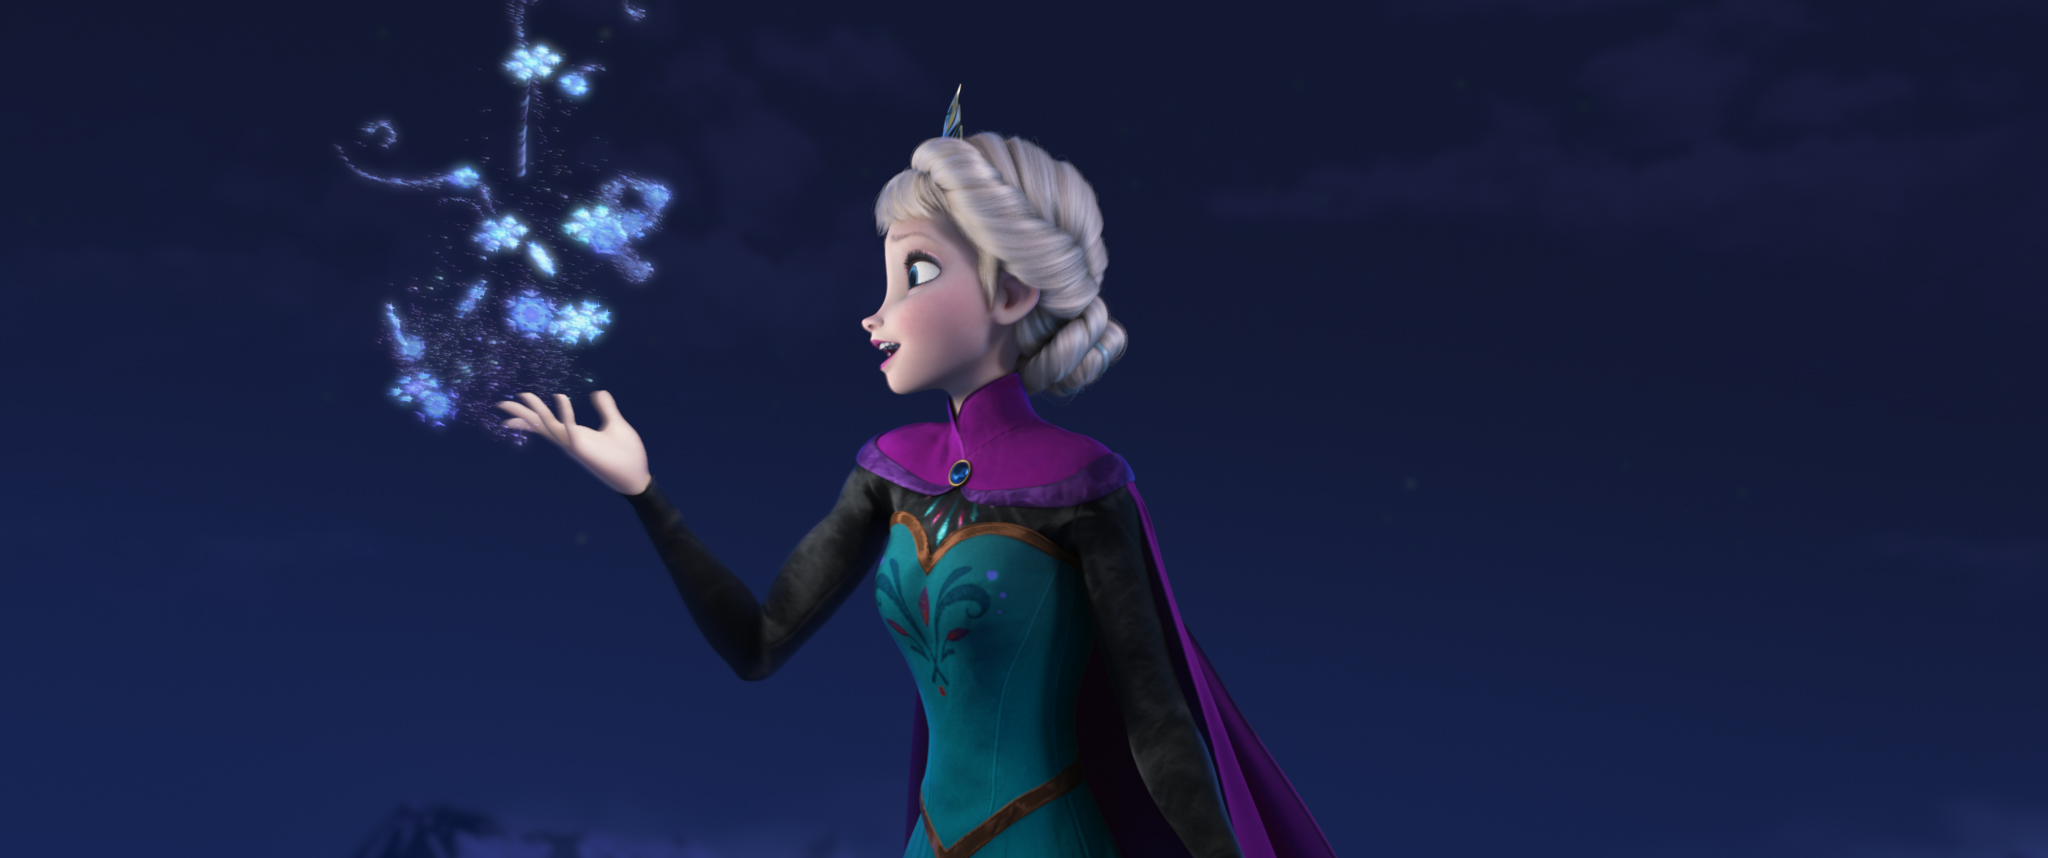 Hasbro Freezes Out Mattel With New Disney Deal The Boston